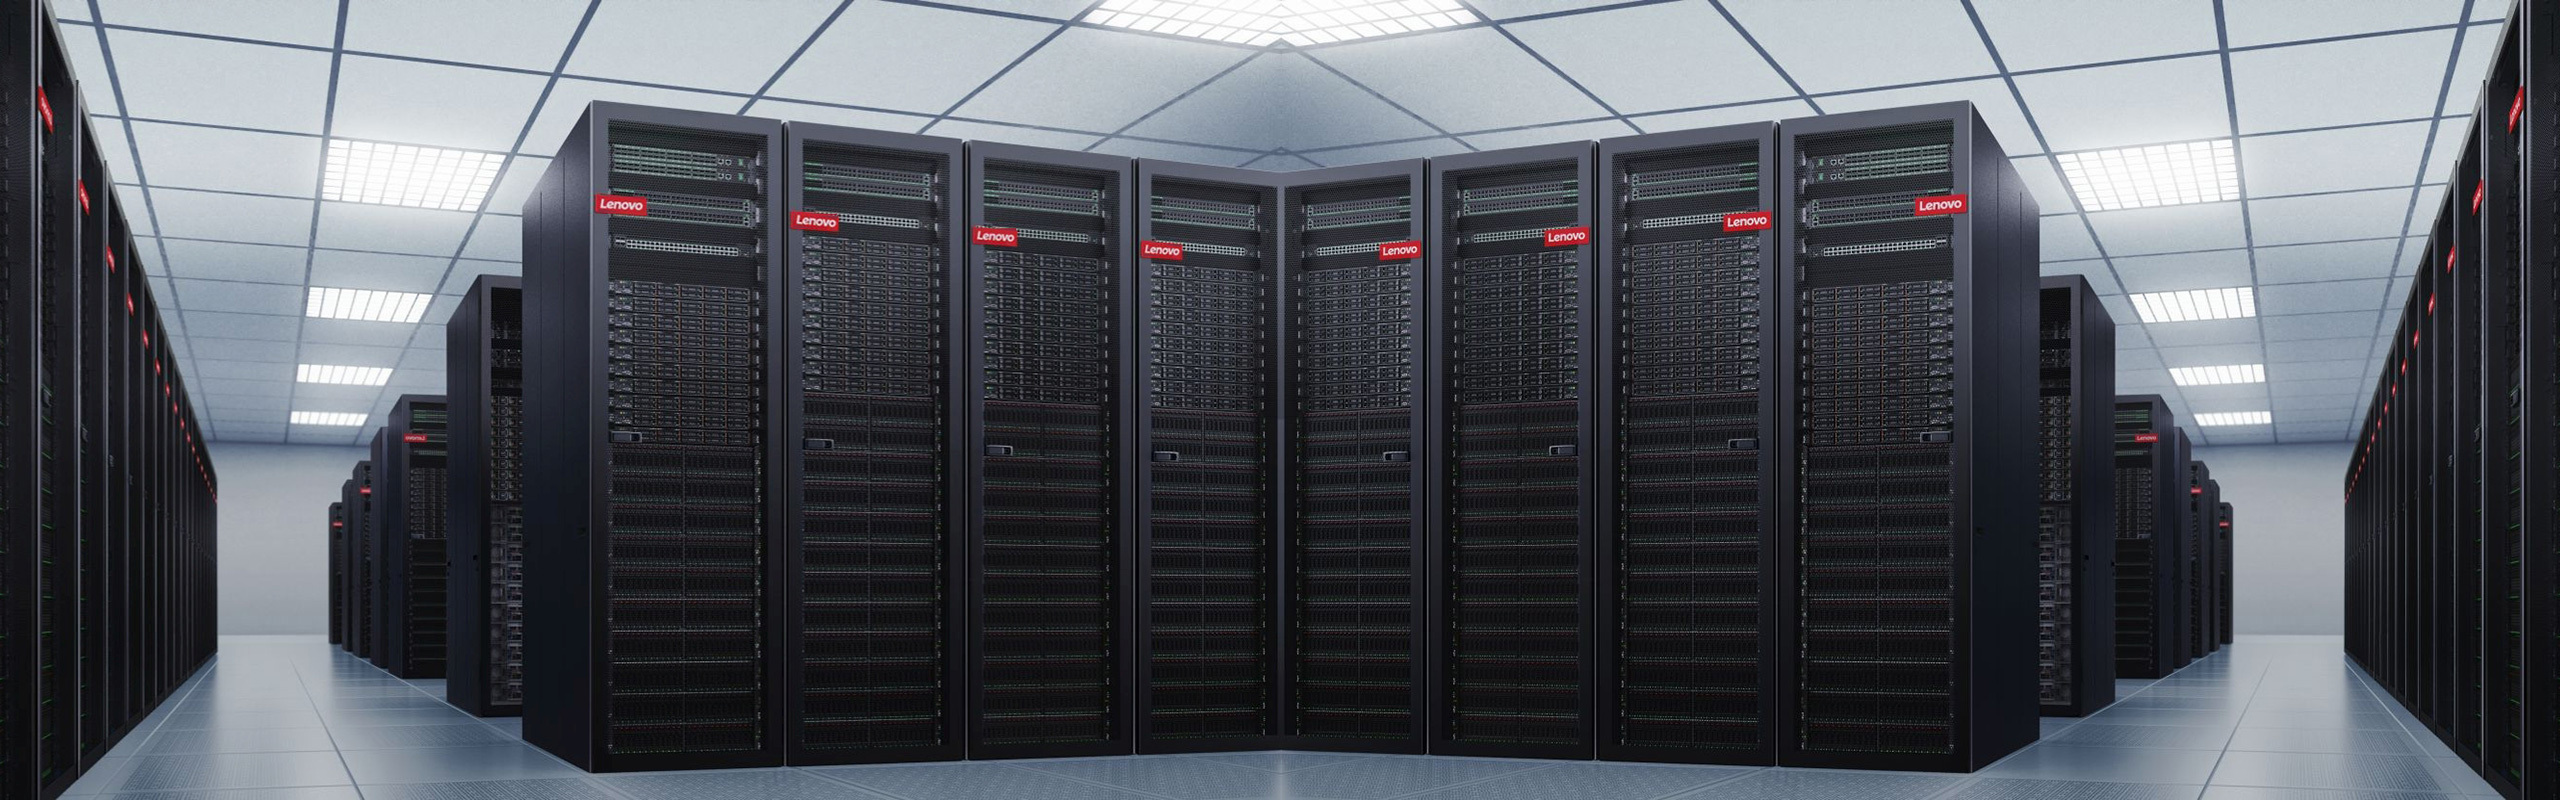 Snellius, the national supercomputer – background